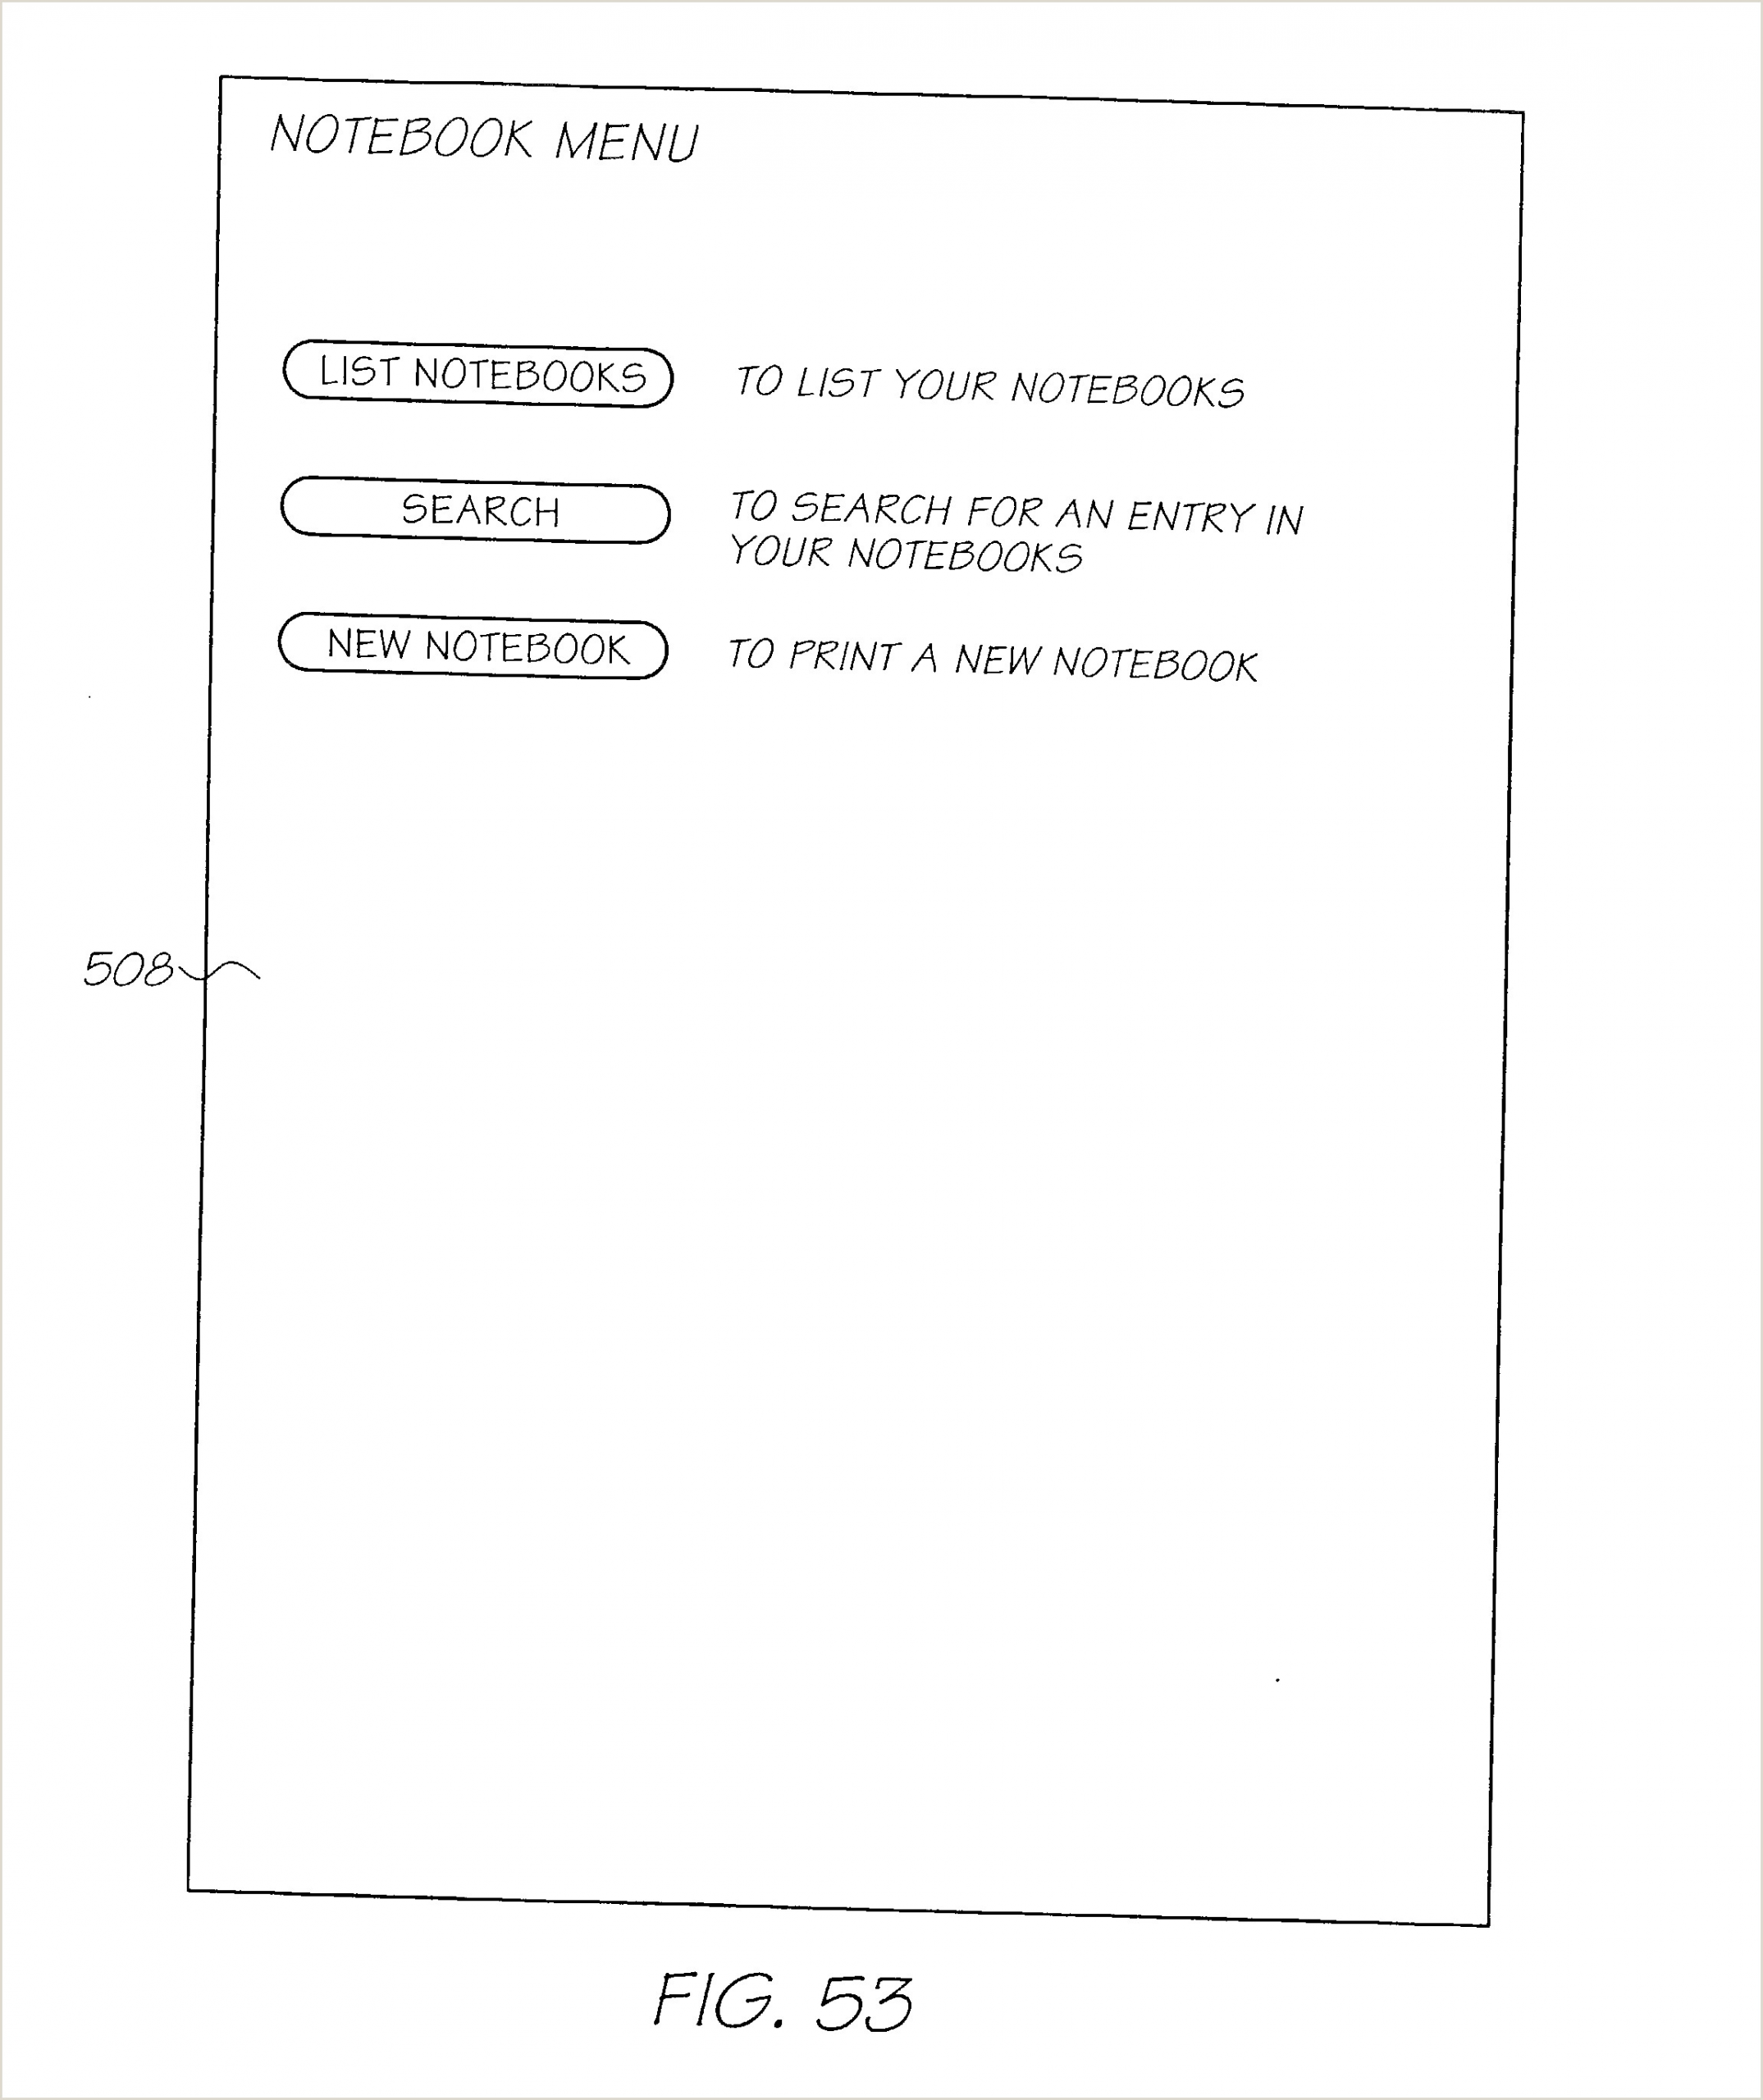 Floor Banners Retractable Us A1 Method And System For Note Taking Using